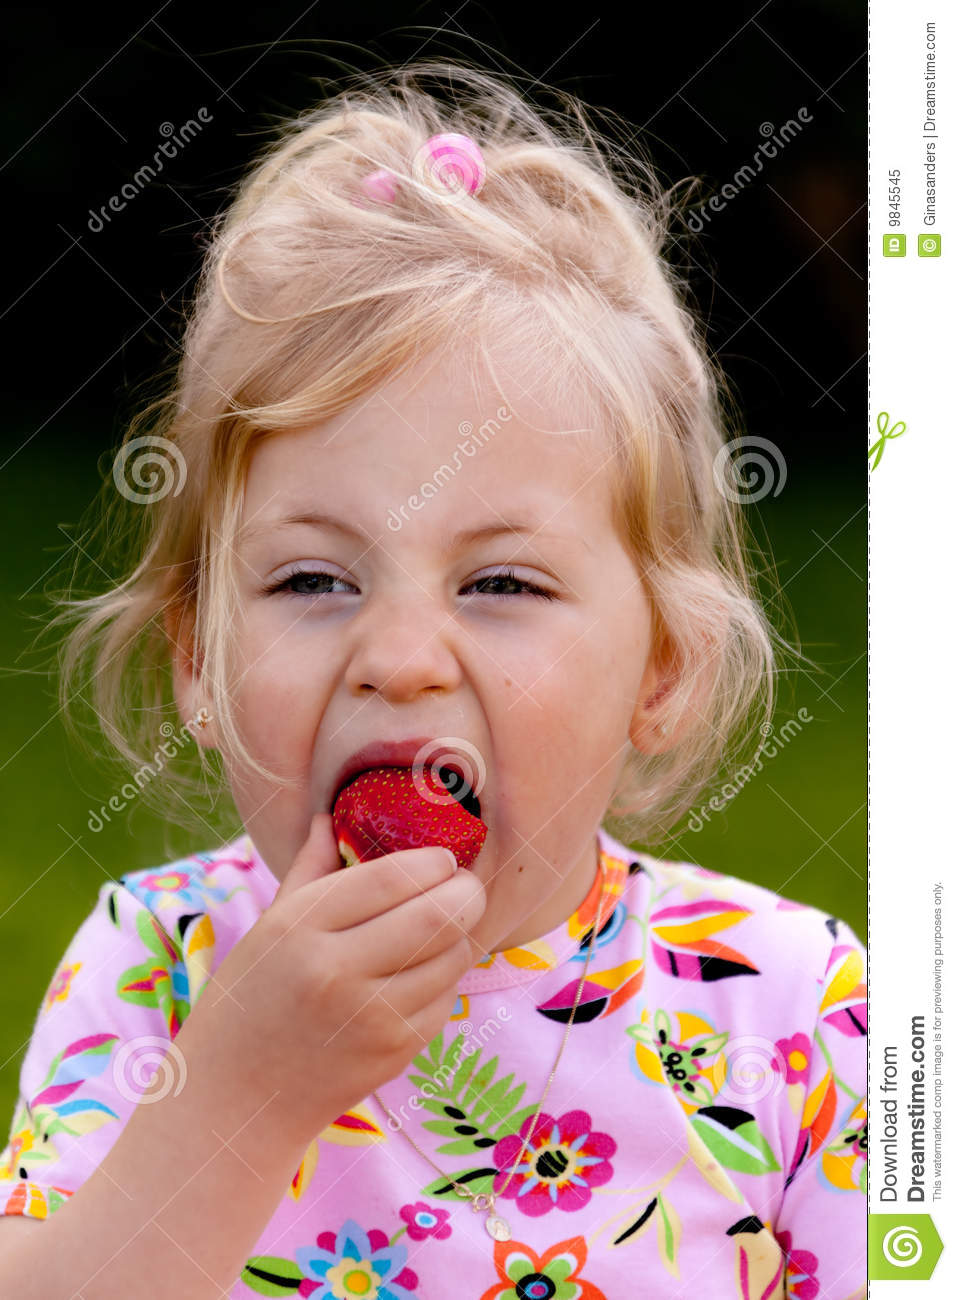 Child Eating A Strawberry In The Garden Royalty Free Stock